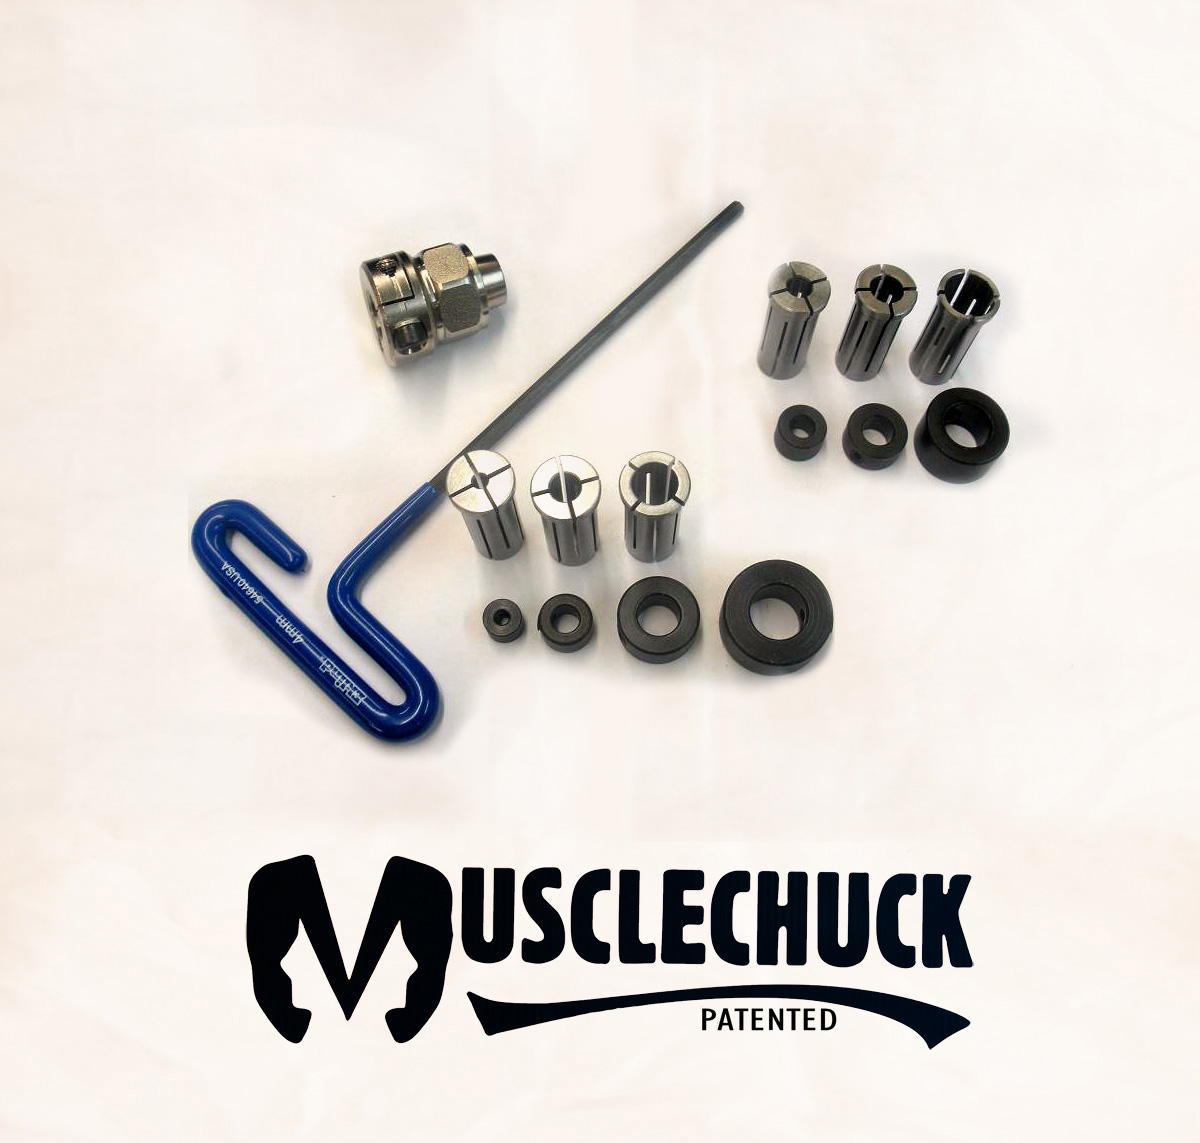 Musclechuck Assembly Combo Kit #2